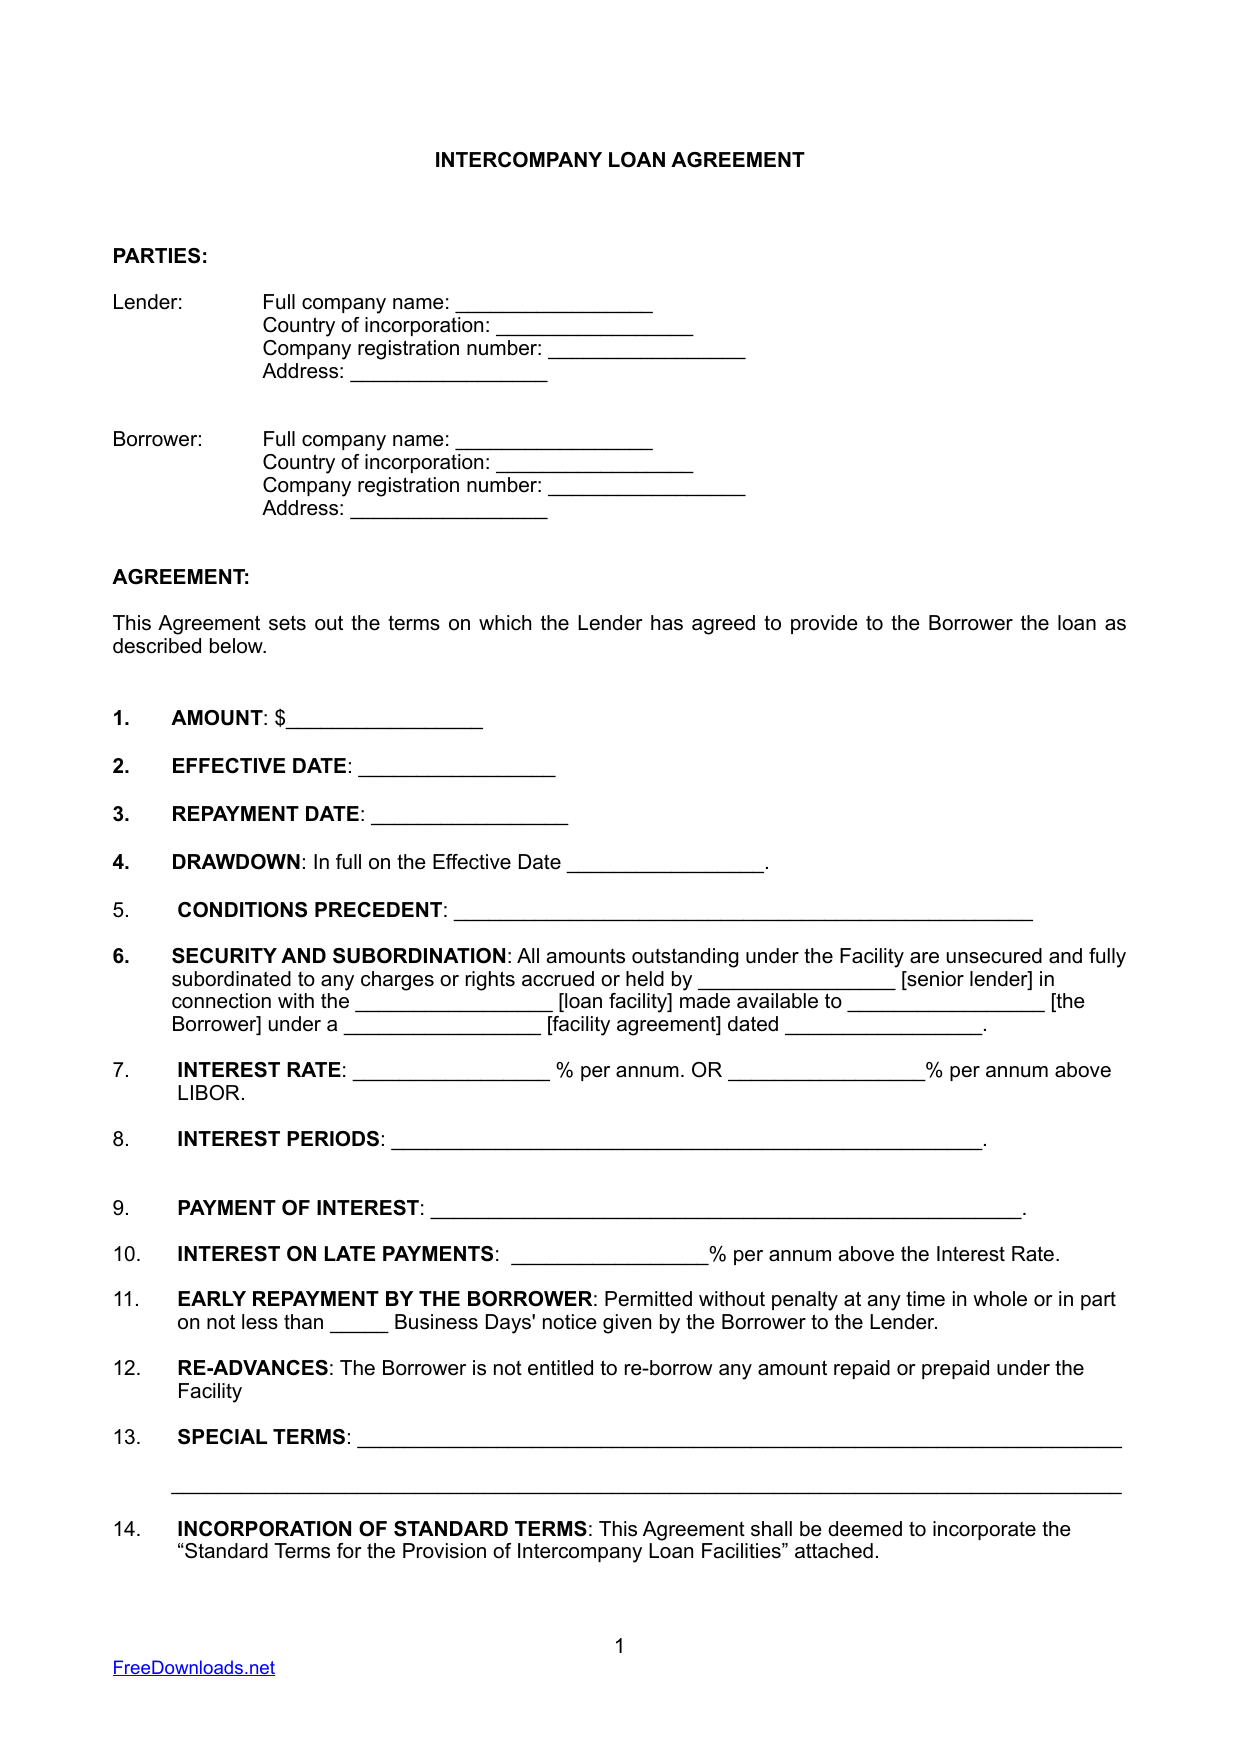 InterCompany Loan Agreement Template